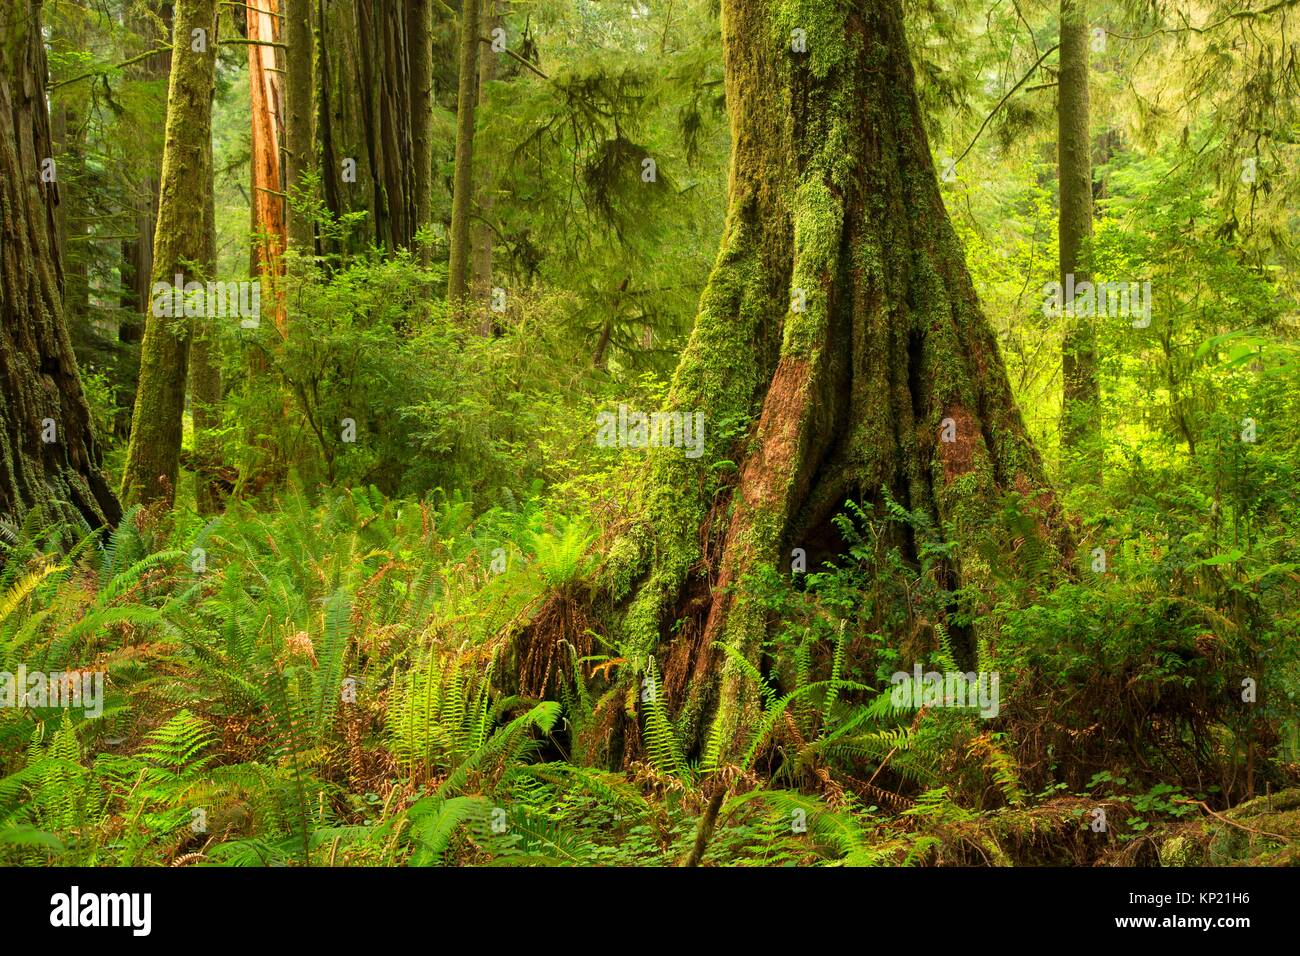 Nurse tree along Simpson-Reed Discovery Trail, Jedediah Smith Redwoods State Park, Redwood National Park, California. - Stock Image